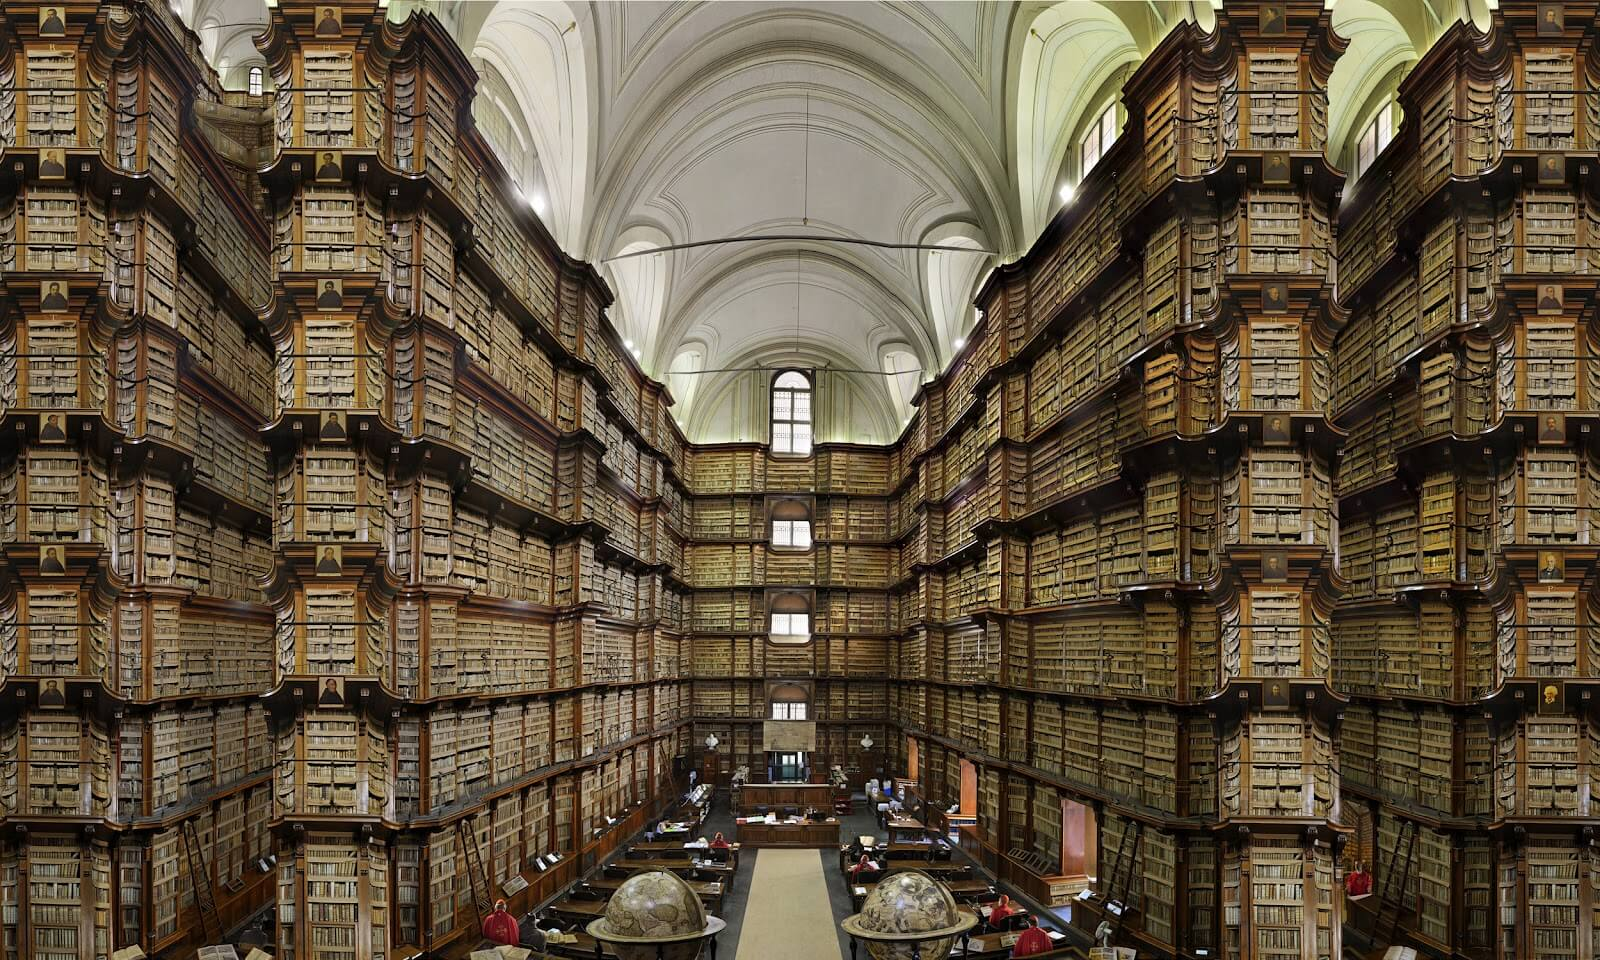 Angelica Library Rome Italy